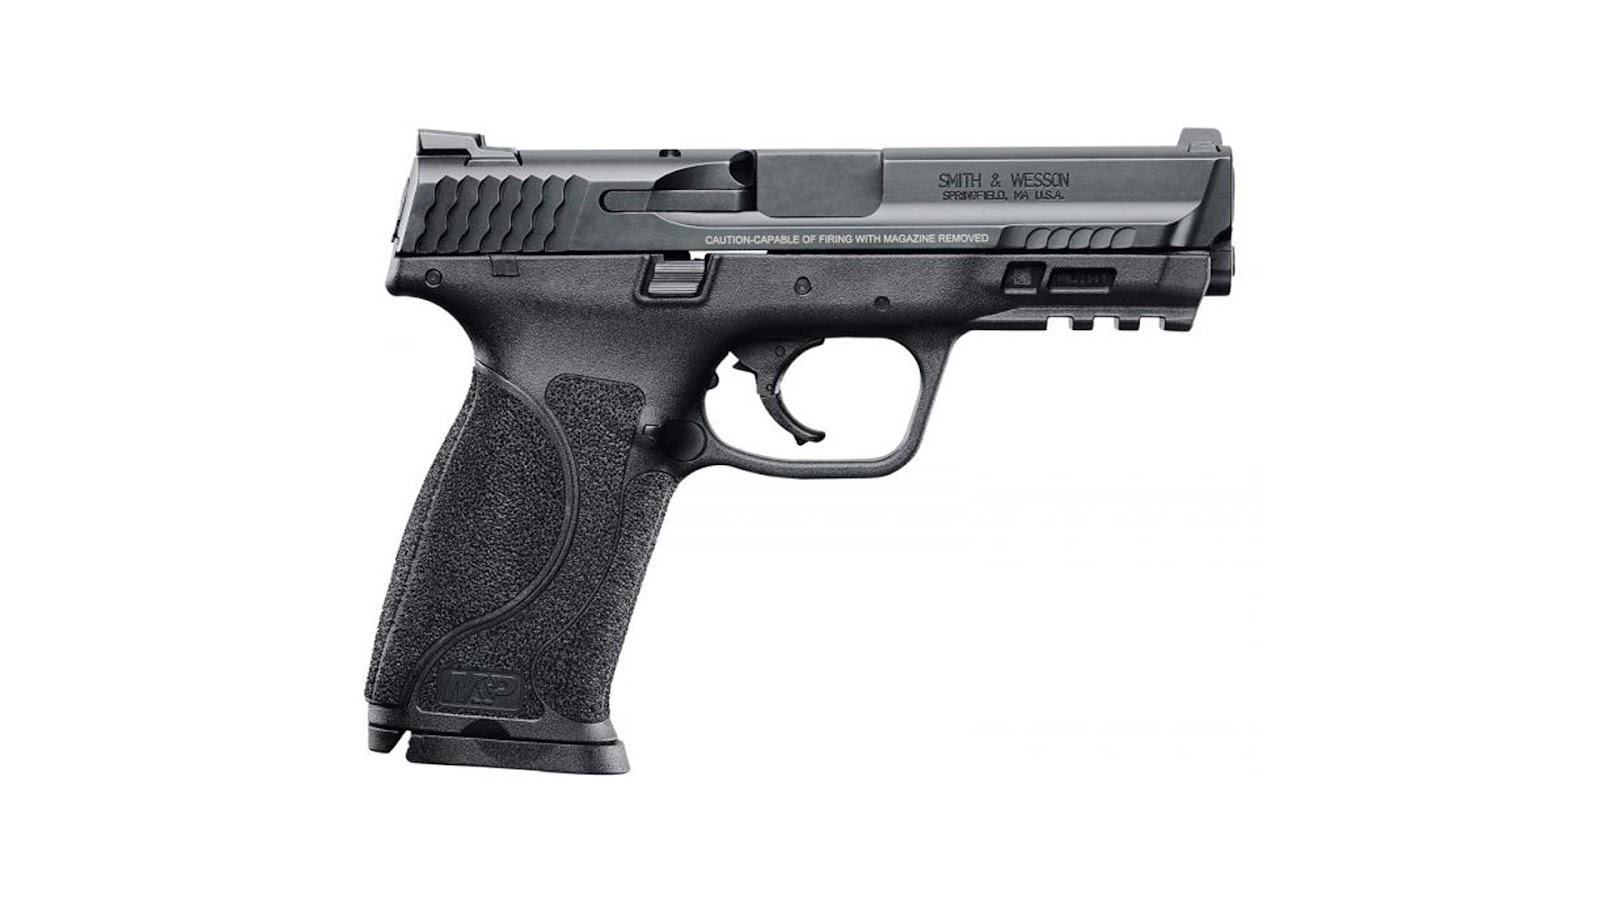 Smith & Wesson M&P 9 2.0 pistol